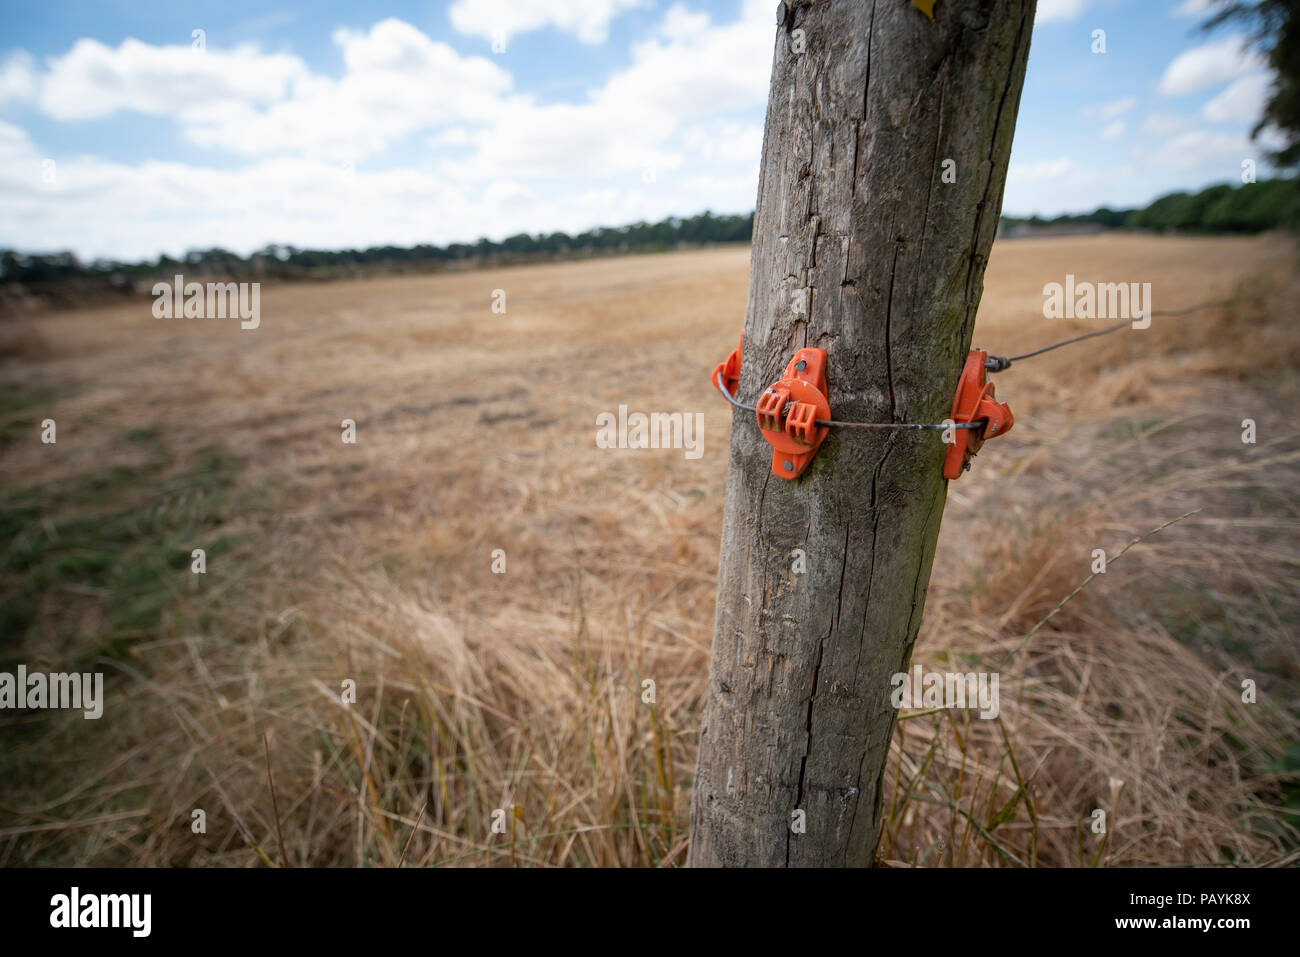 Electric fence attachment around a post on a farm, Cotswolds - Stock Image